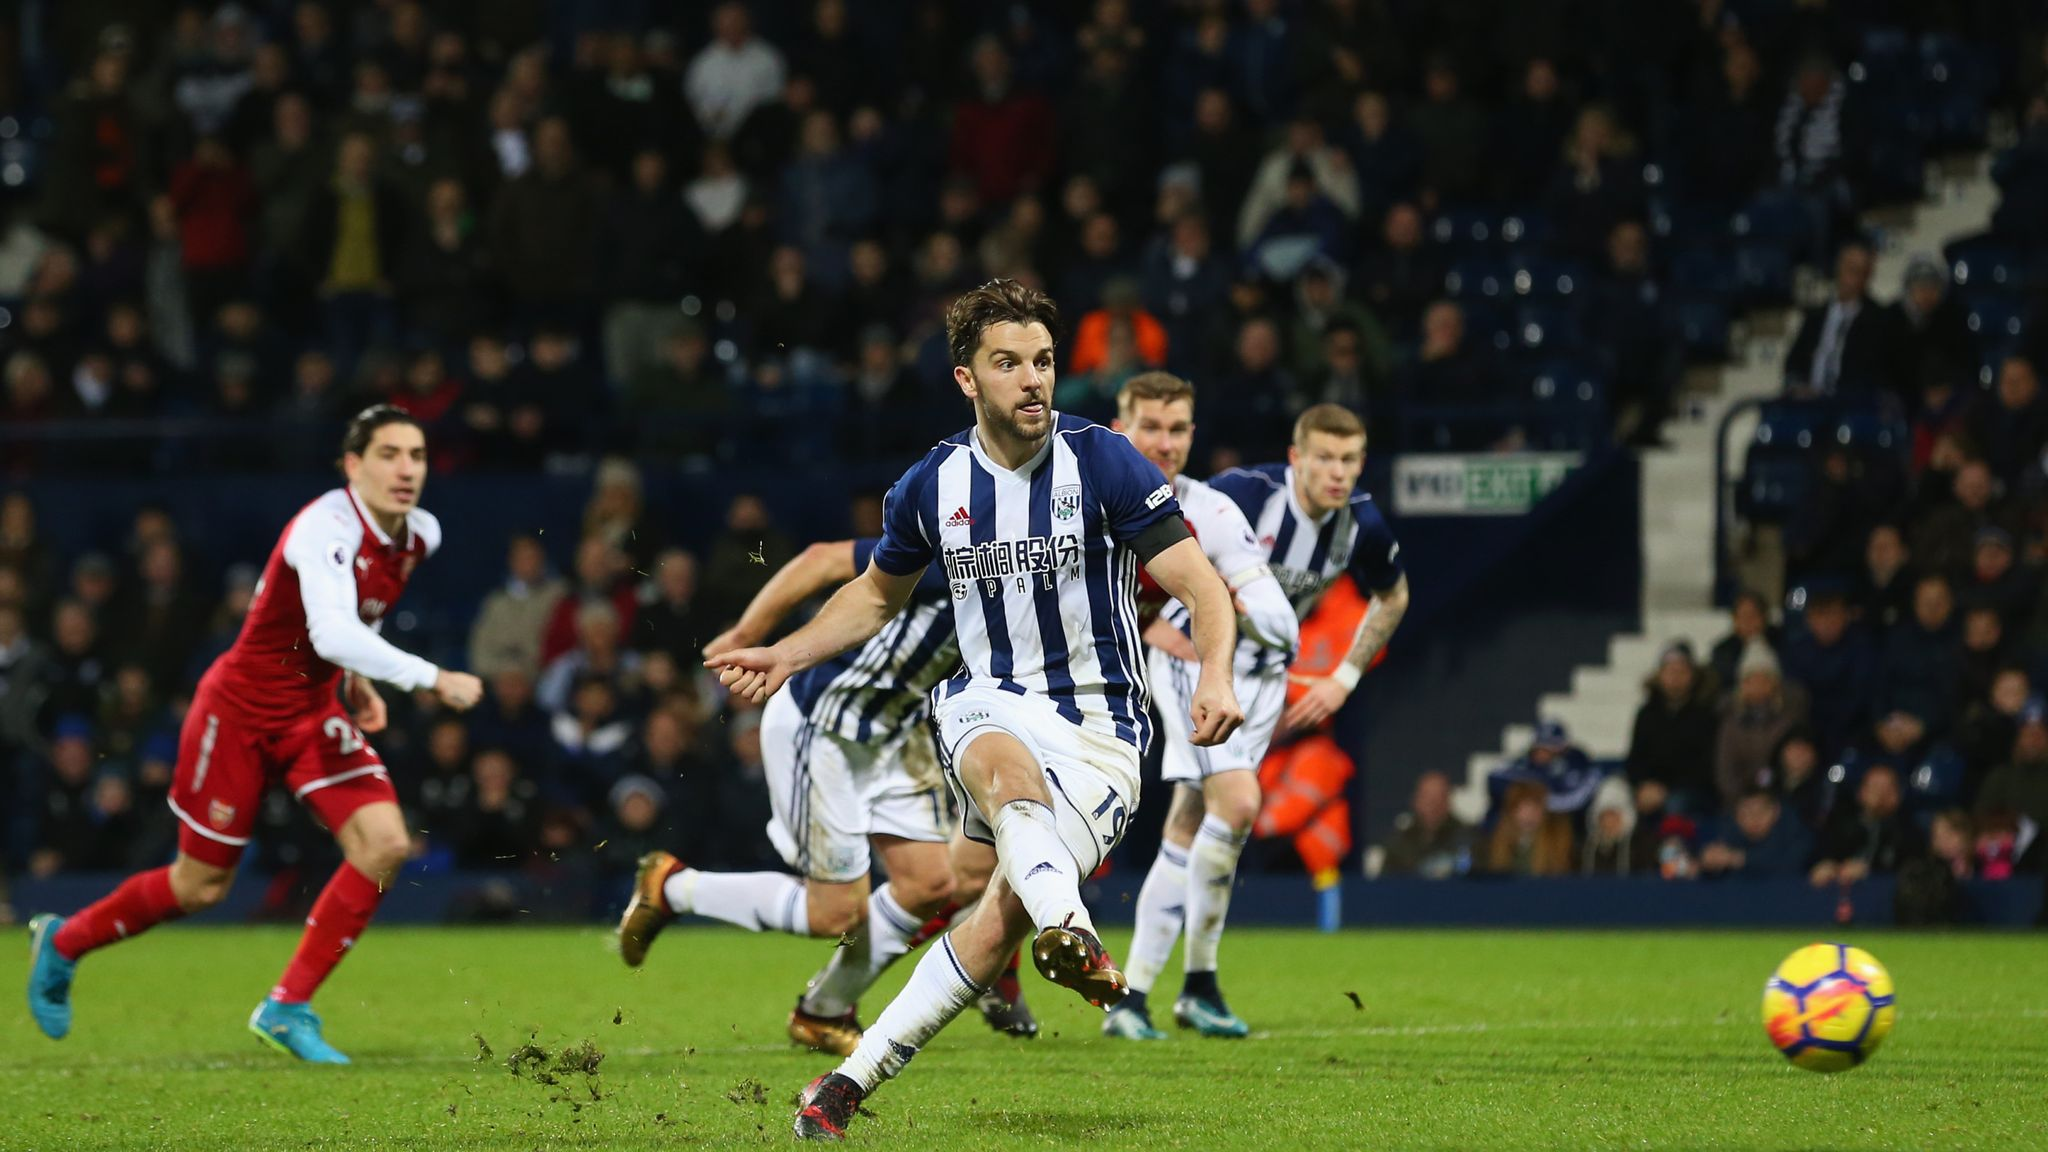 West Brom 1-1 Arsenal: Jay Rodriguez's controversial penalty denies Gunners  | Football News | Sky Sports